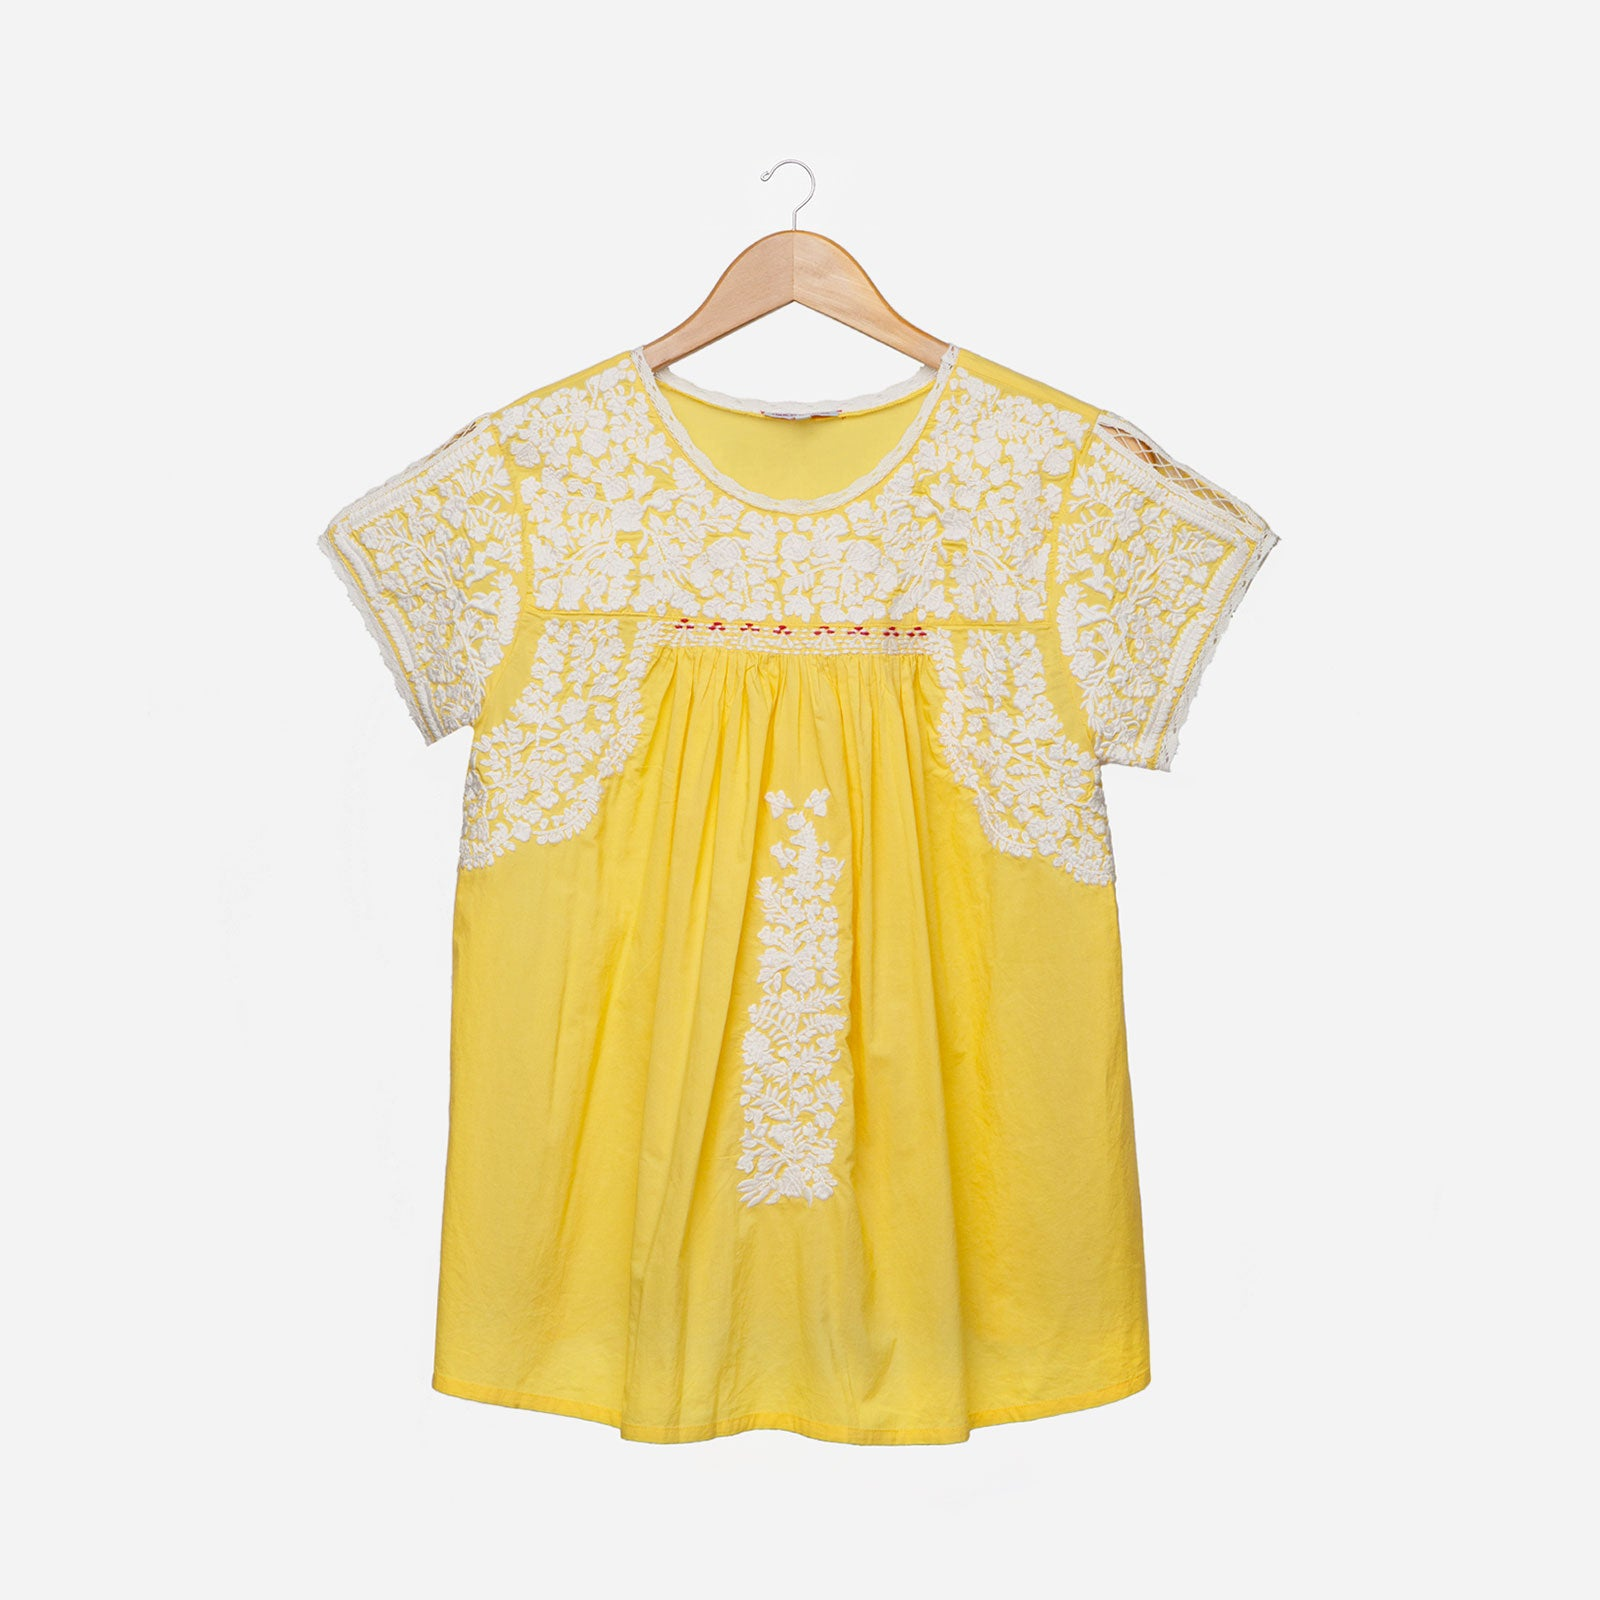 Floral Embroidered Lace Top Yellow Oyster